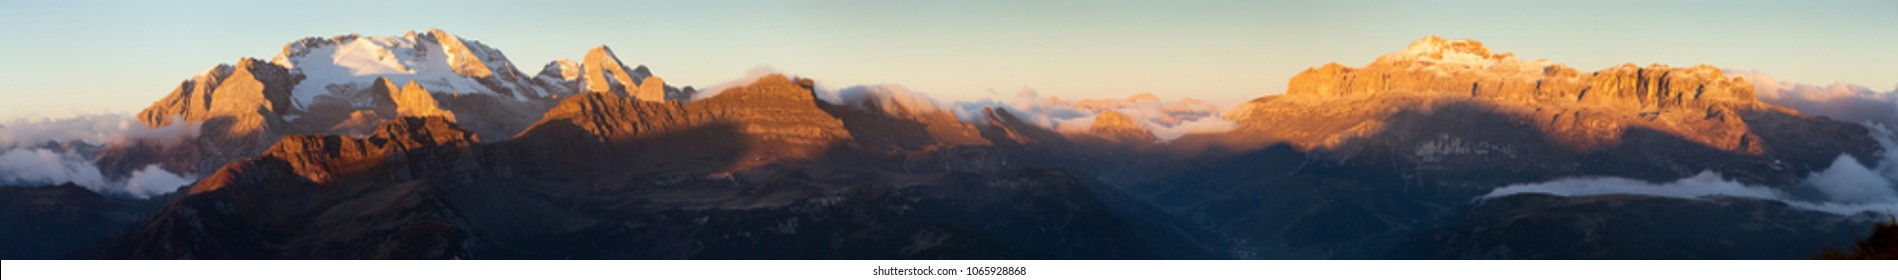 Evening sunset panoramic view of Marmolada, the highest mount of Dolomites mountains and mount Sella, Italy